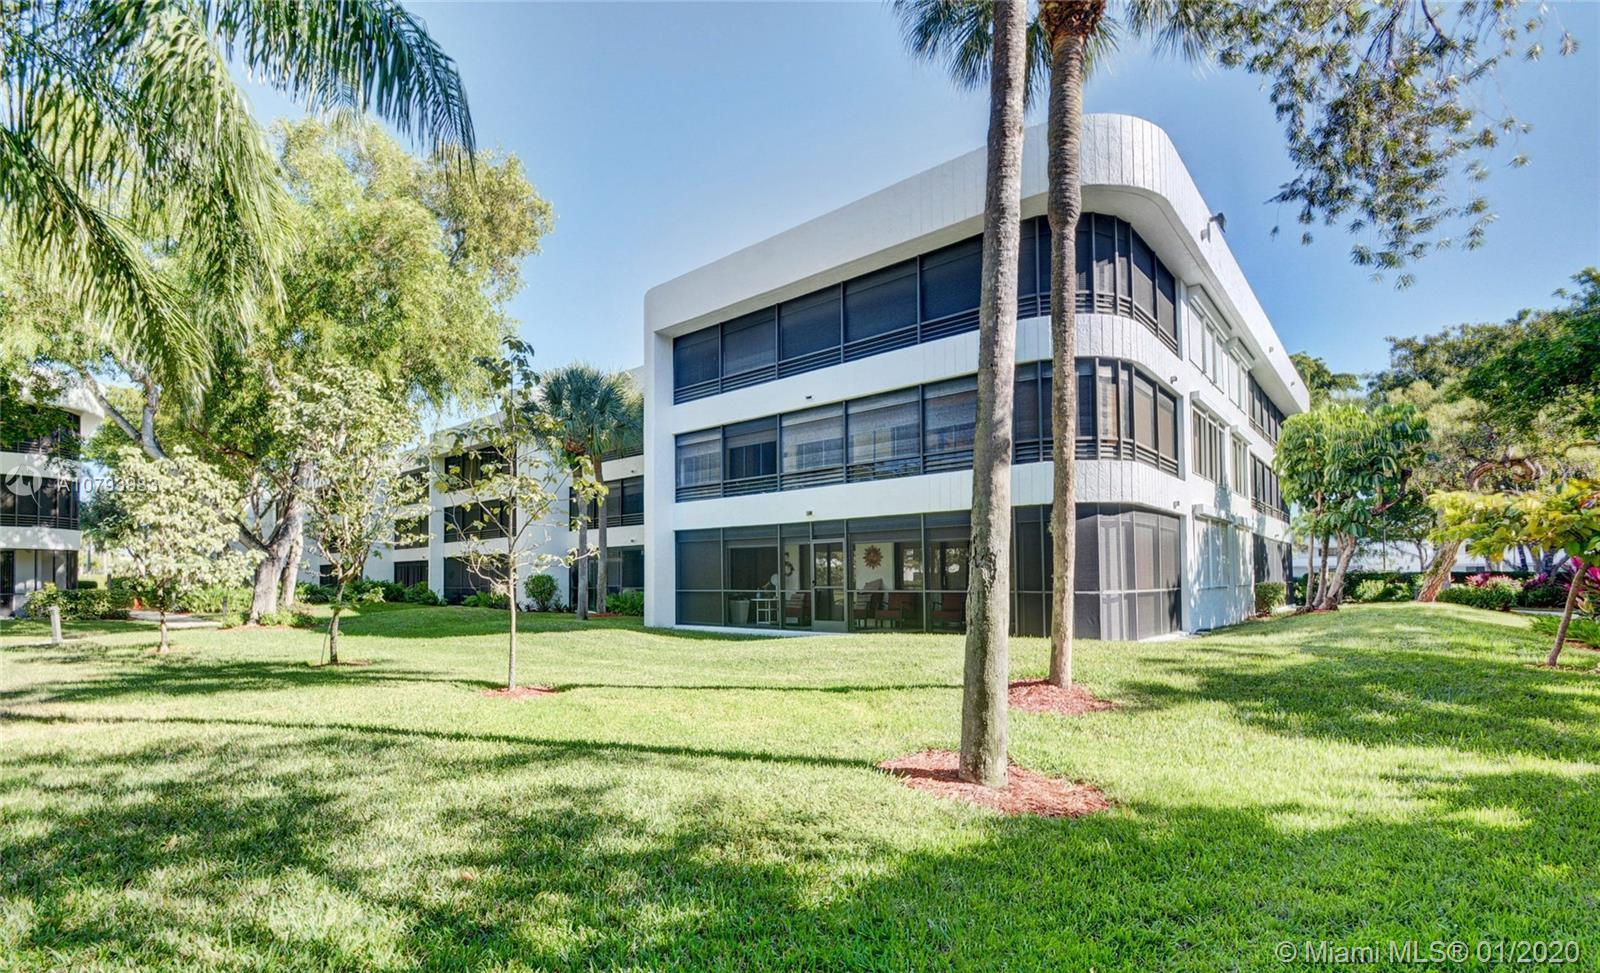 Spacious 2 bed 2 bath at Sheridan by the Beach - lovely community a mile from Hollywood Beach Broadw